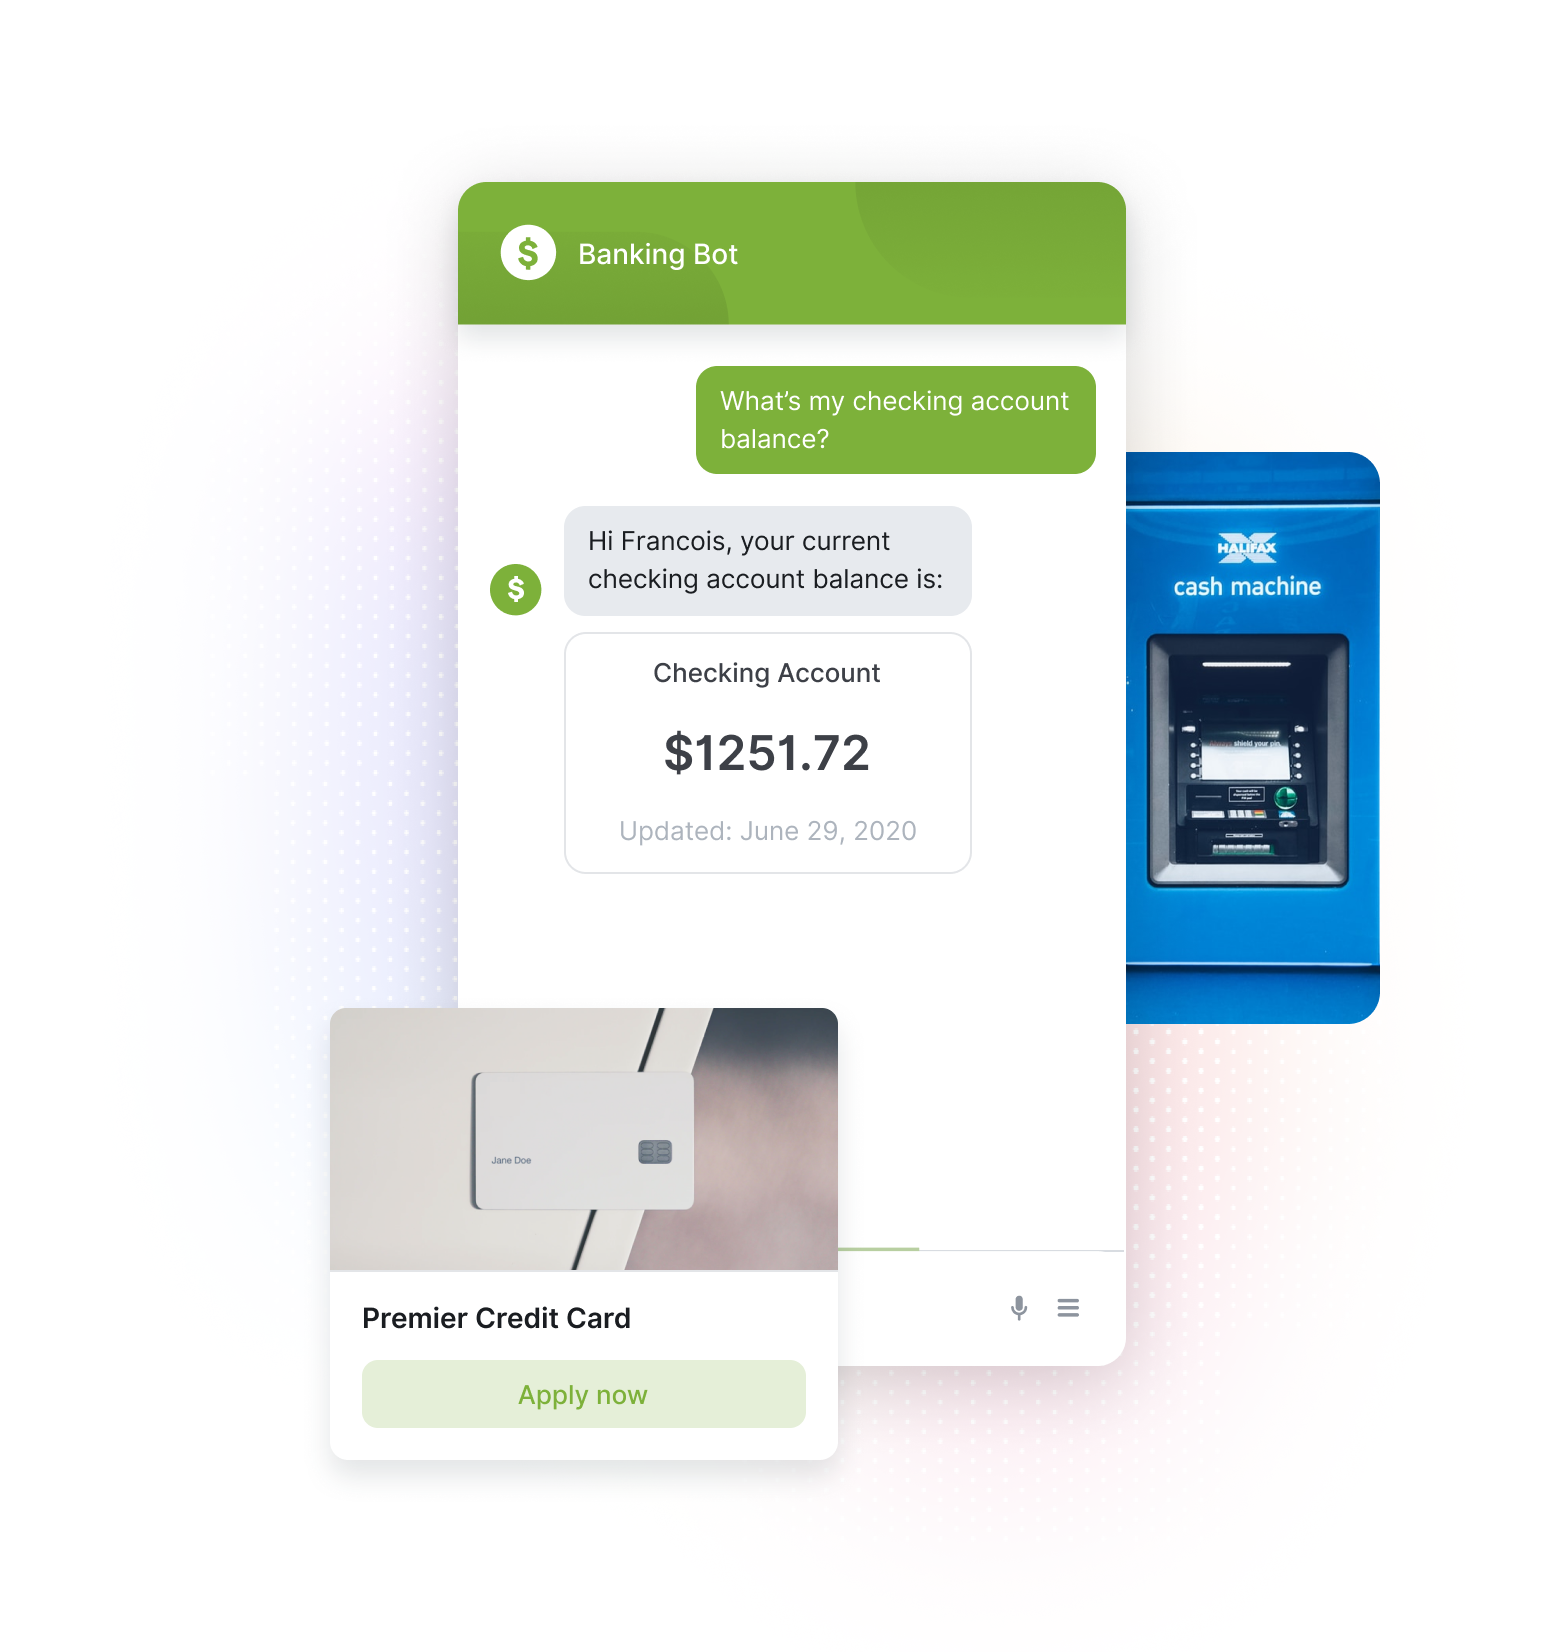 Credit Card Application Chat, a Bot Helping a Customer Find Their Chequing Account Balance, and an ATM